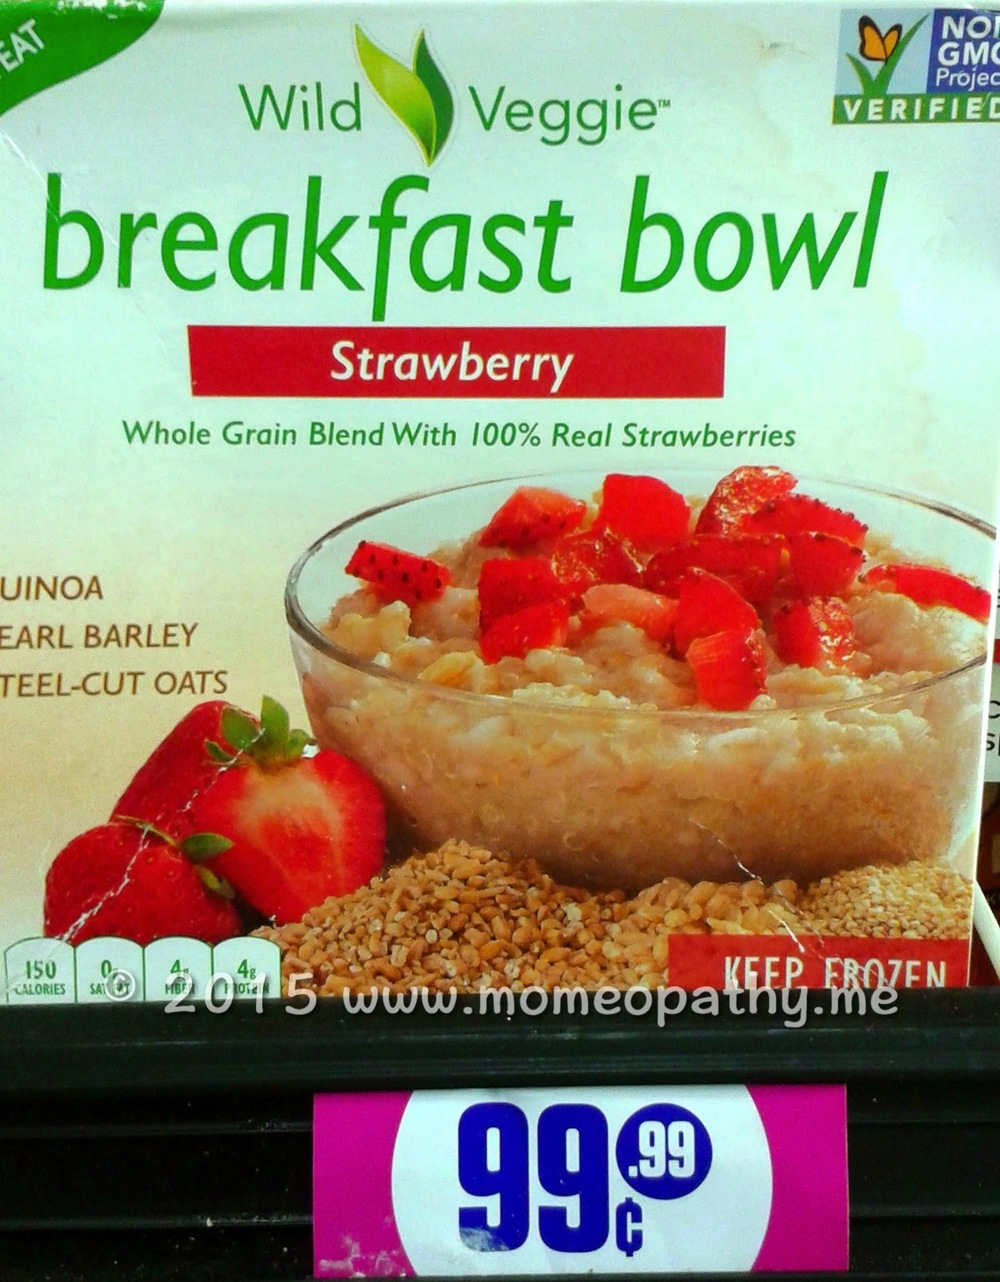 BreakfstbowlStrawberry copy-1.jpg